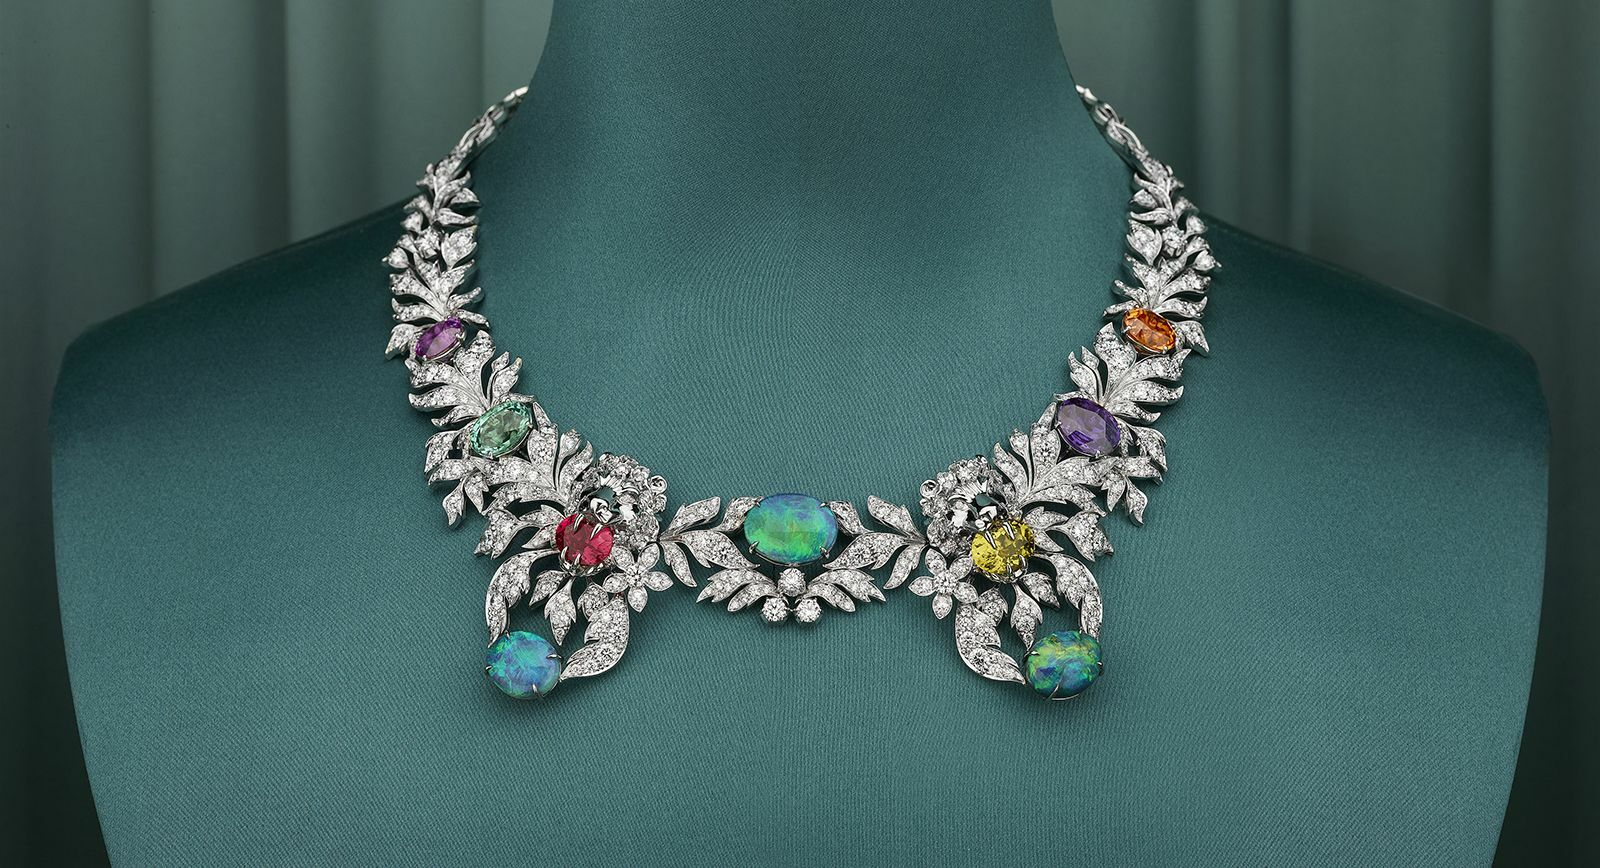 Gucci Hortus Deliciarum necklace